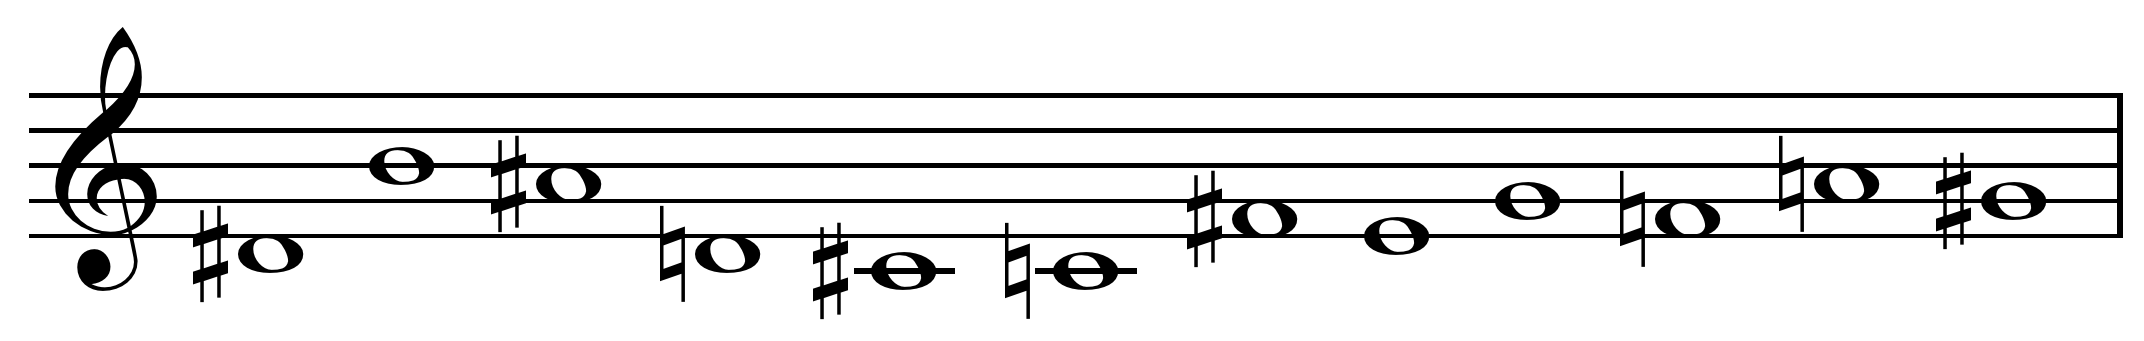 File:Variations for piano (Webern) tone row.png - Row PNG